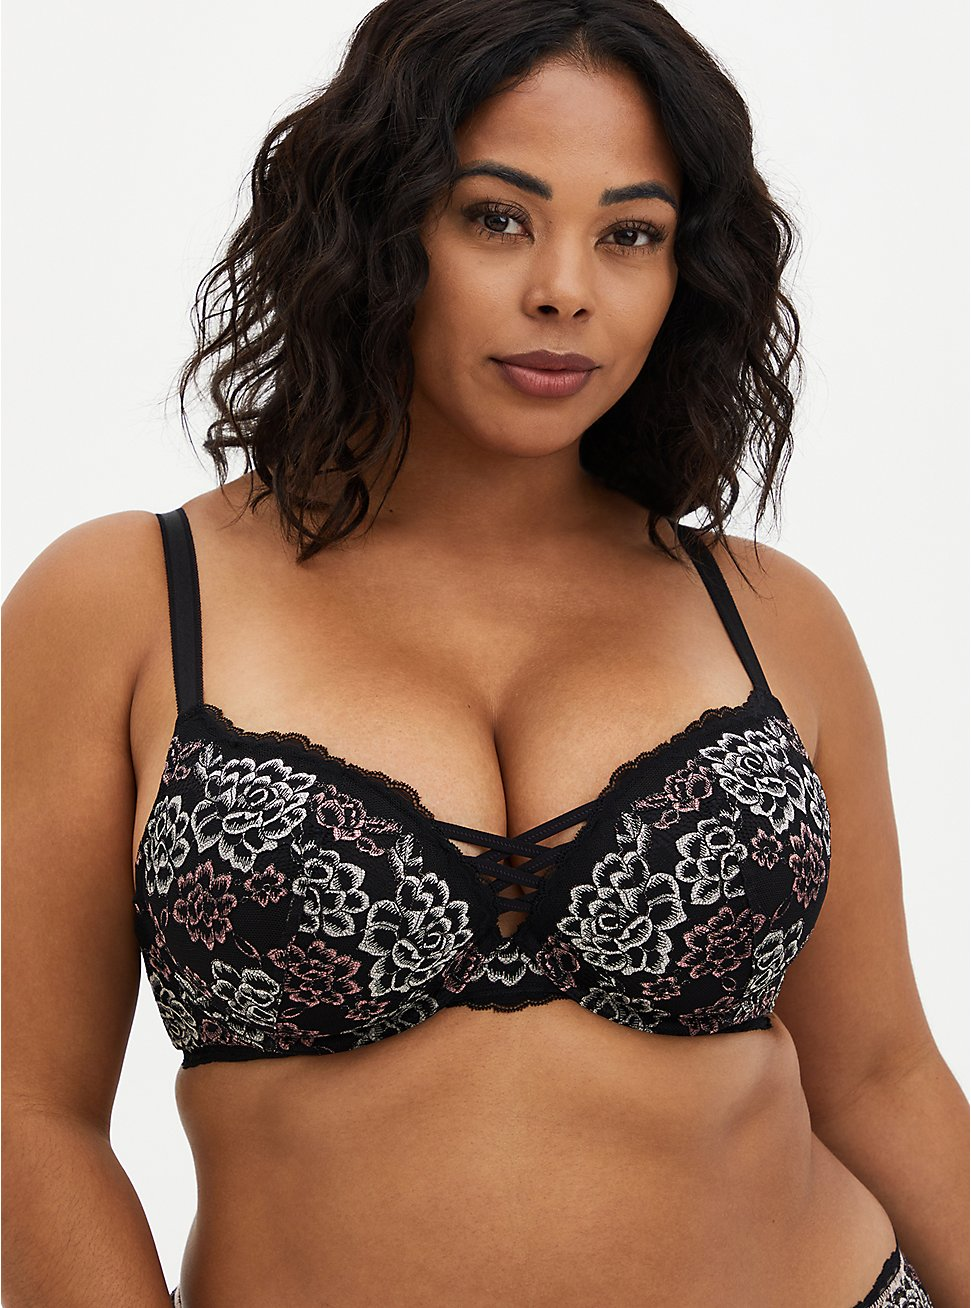 Plus Size XO Push-Up Plunge Bra - Lace Black & Pink Floral with 360° Back Smoothing™, , fitModel1-hires